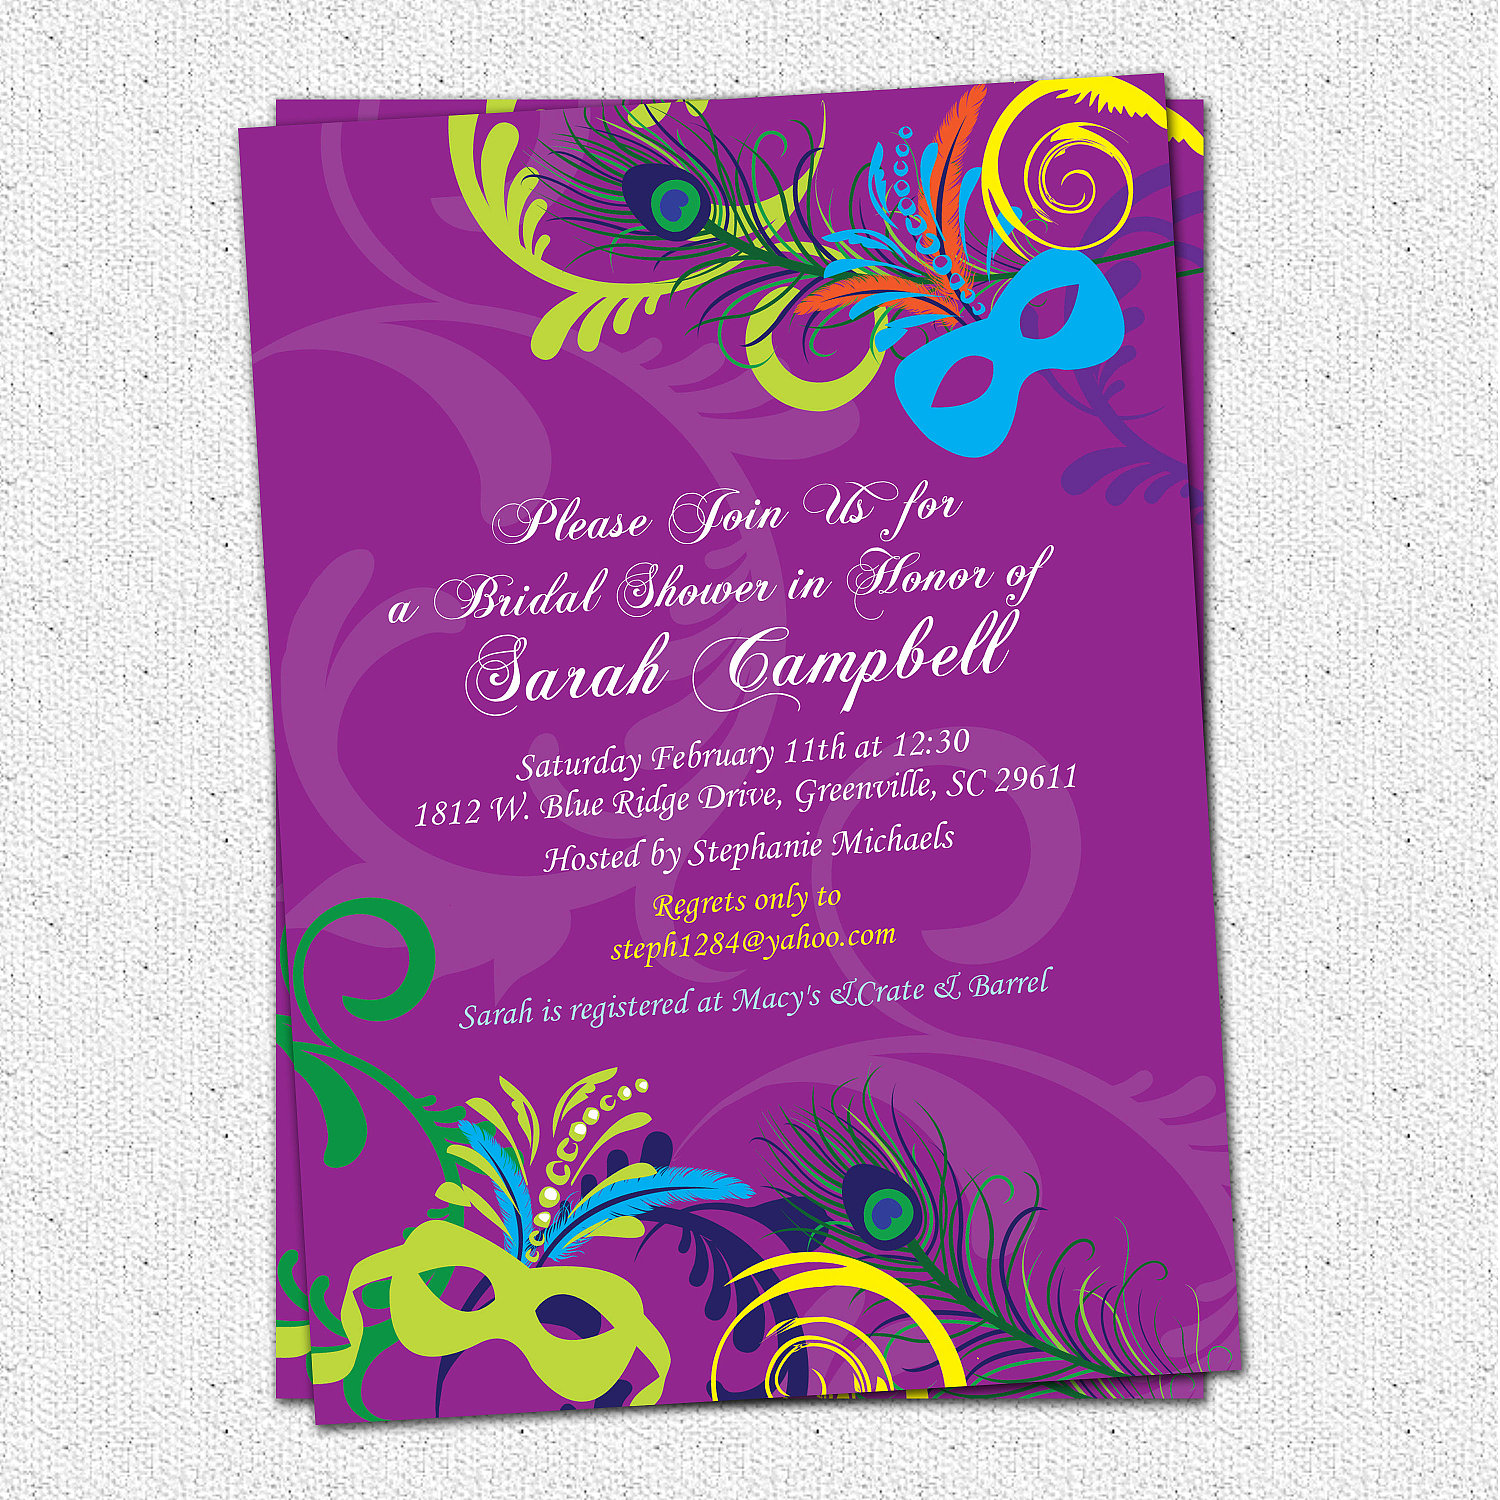 bridal shower invitations mardigras mardi gras wedding invitation invitation masks